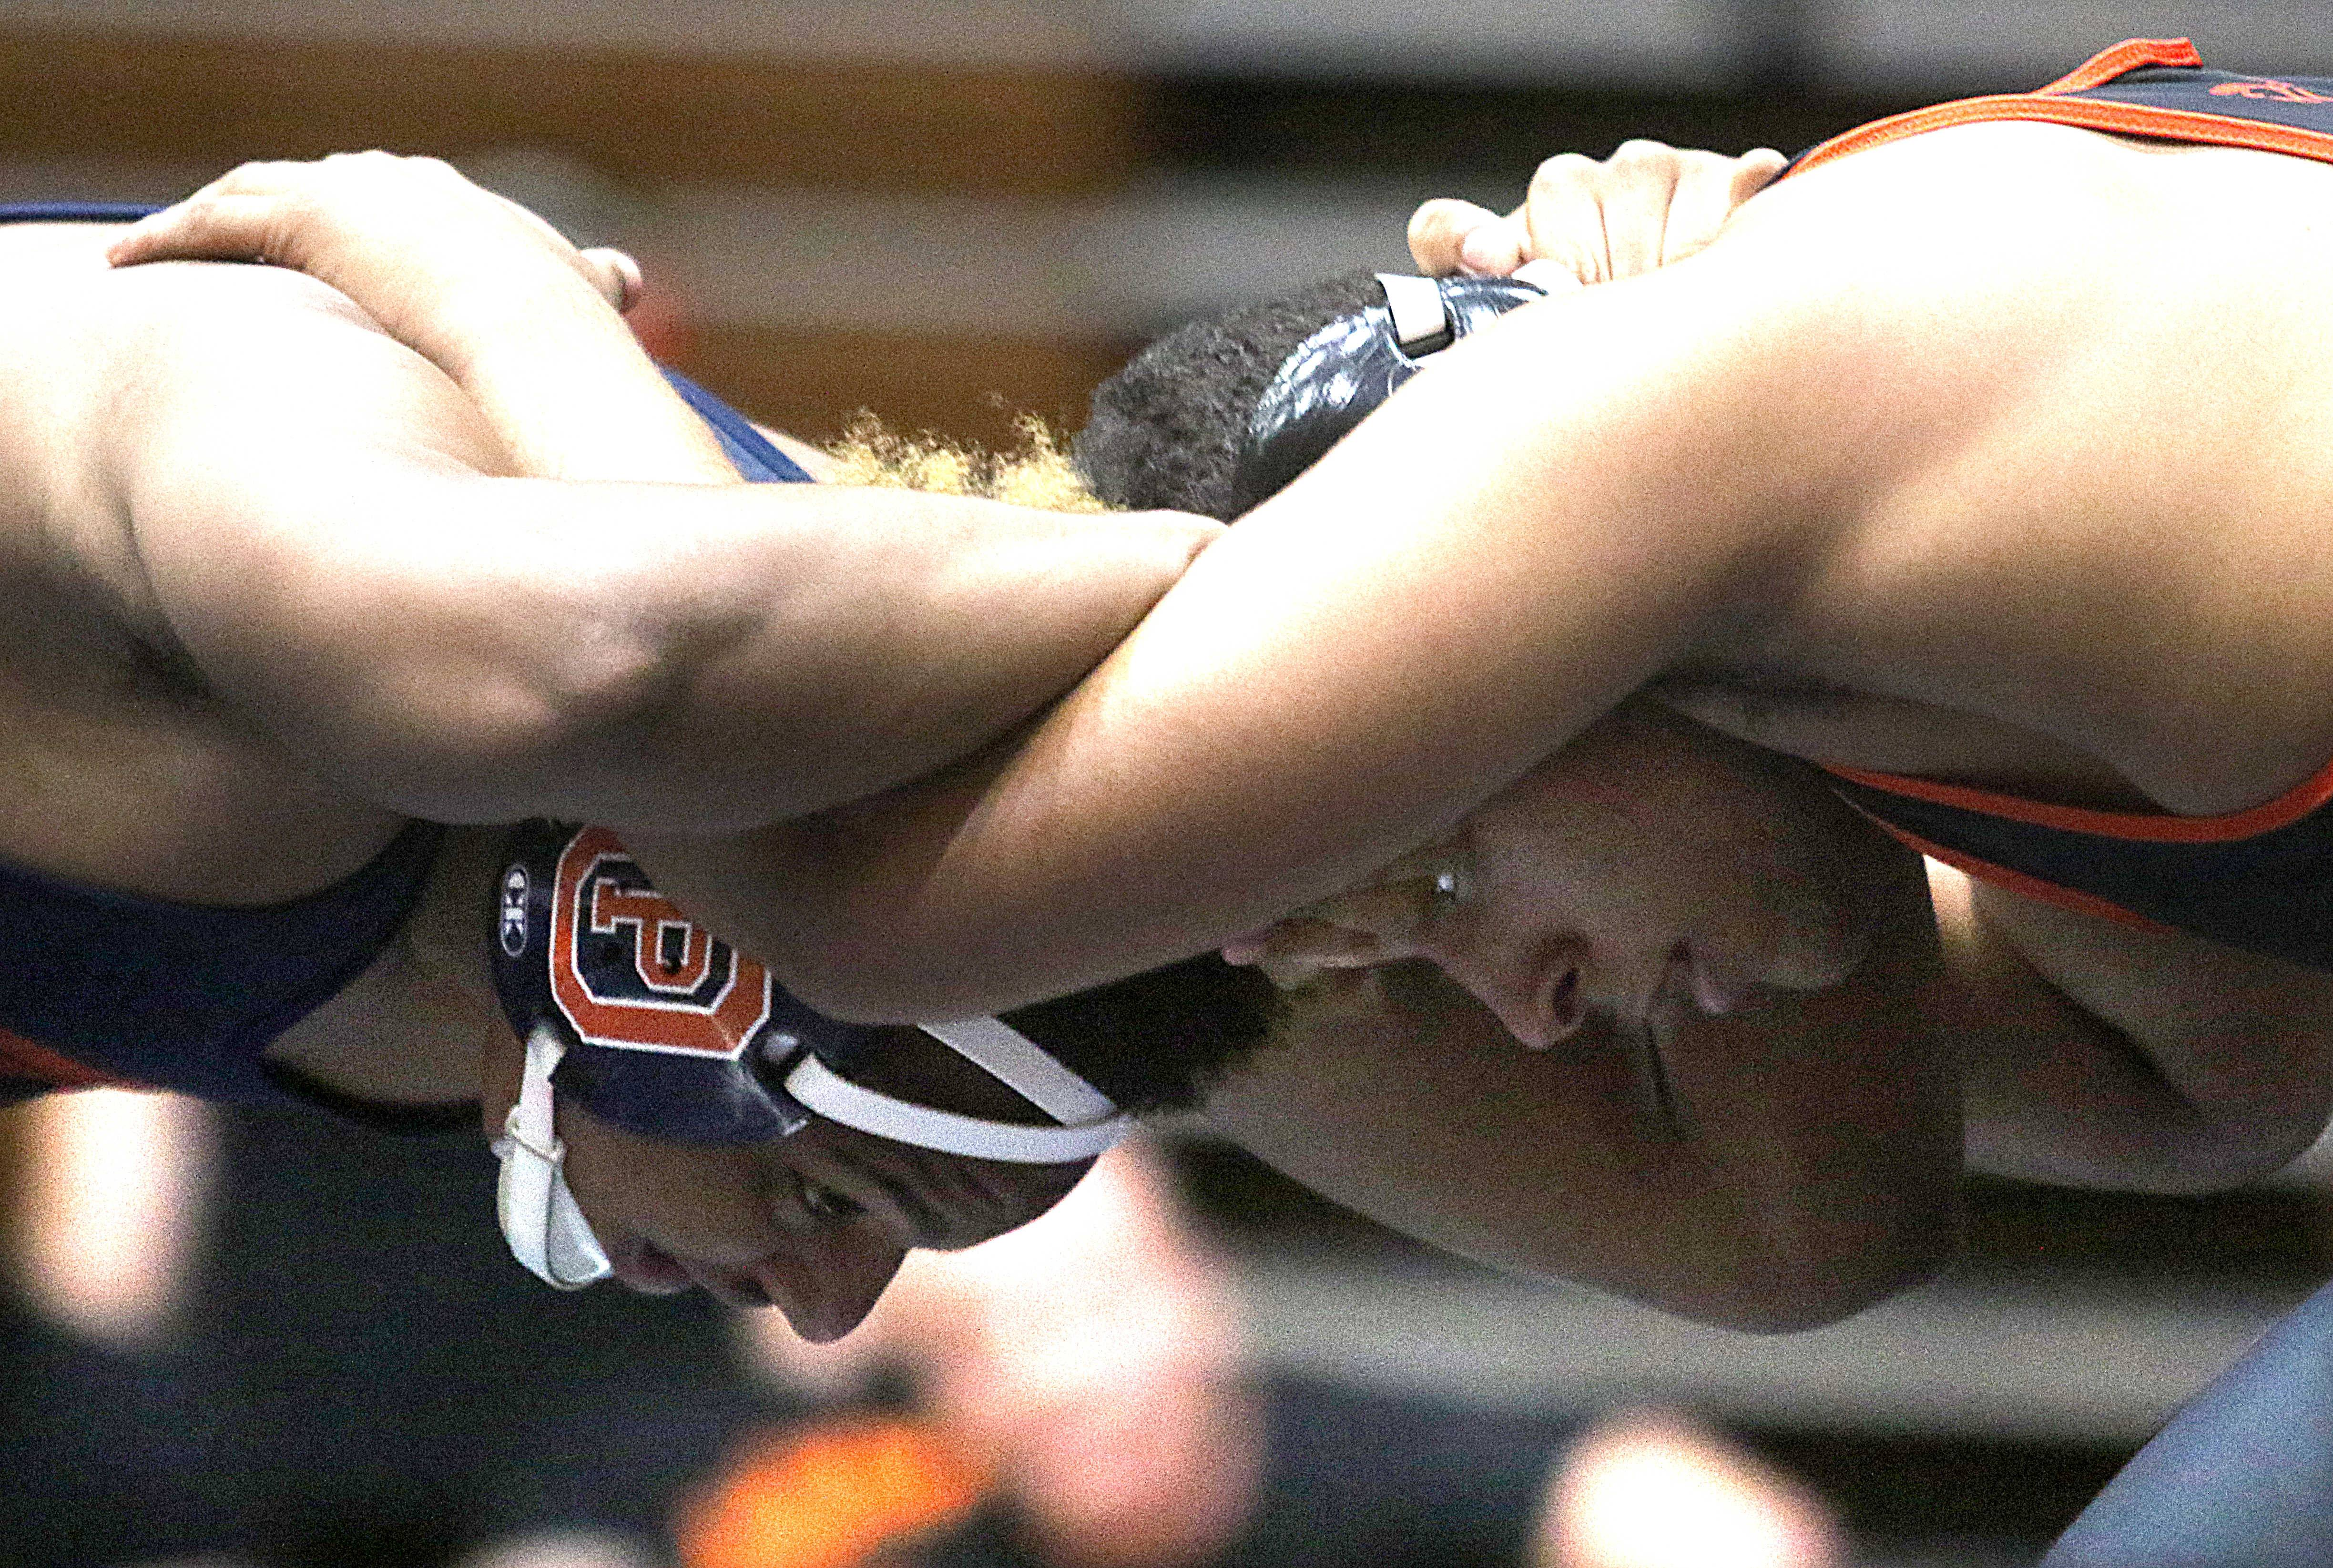 St. Charles East's Darrell Gregg, right, gets tied up with Oak Park-River Forest's Elijah Osit at 195 pounds during team wrestling sectional action at William N. Perry Gymnasium at Conant on Tuesday.